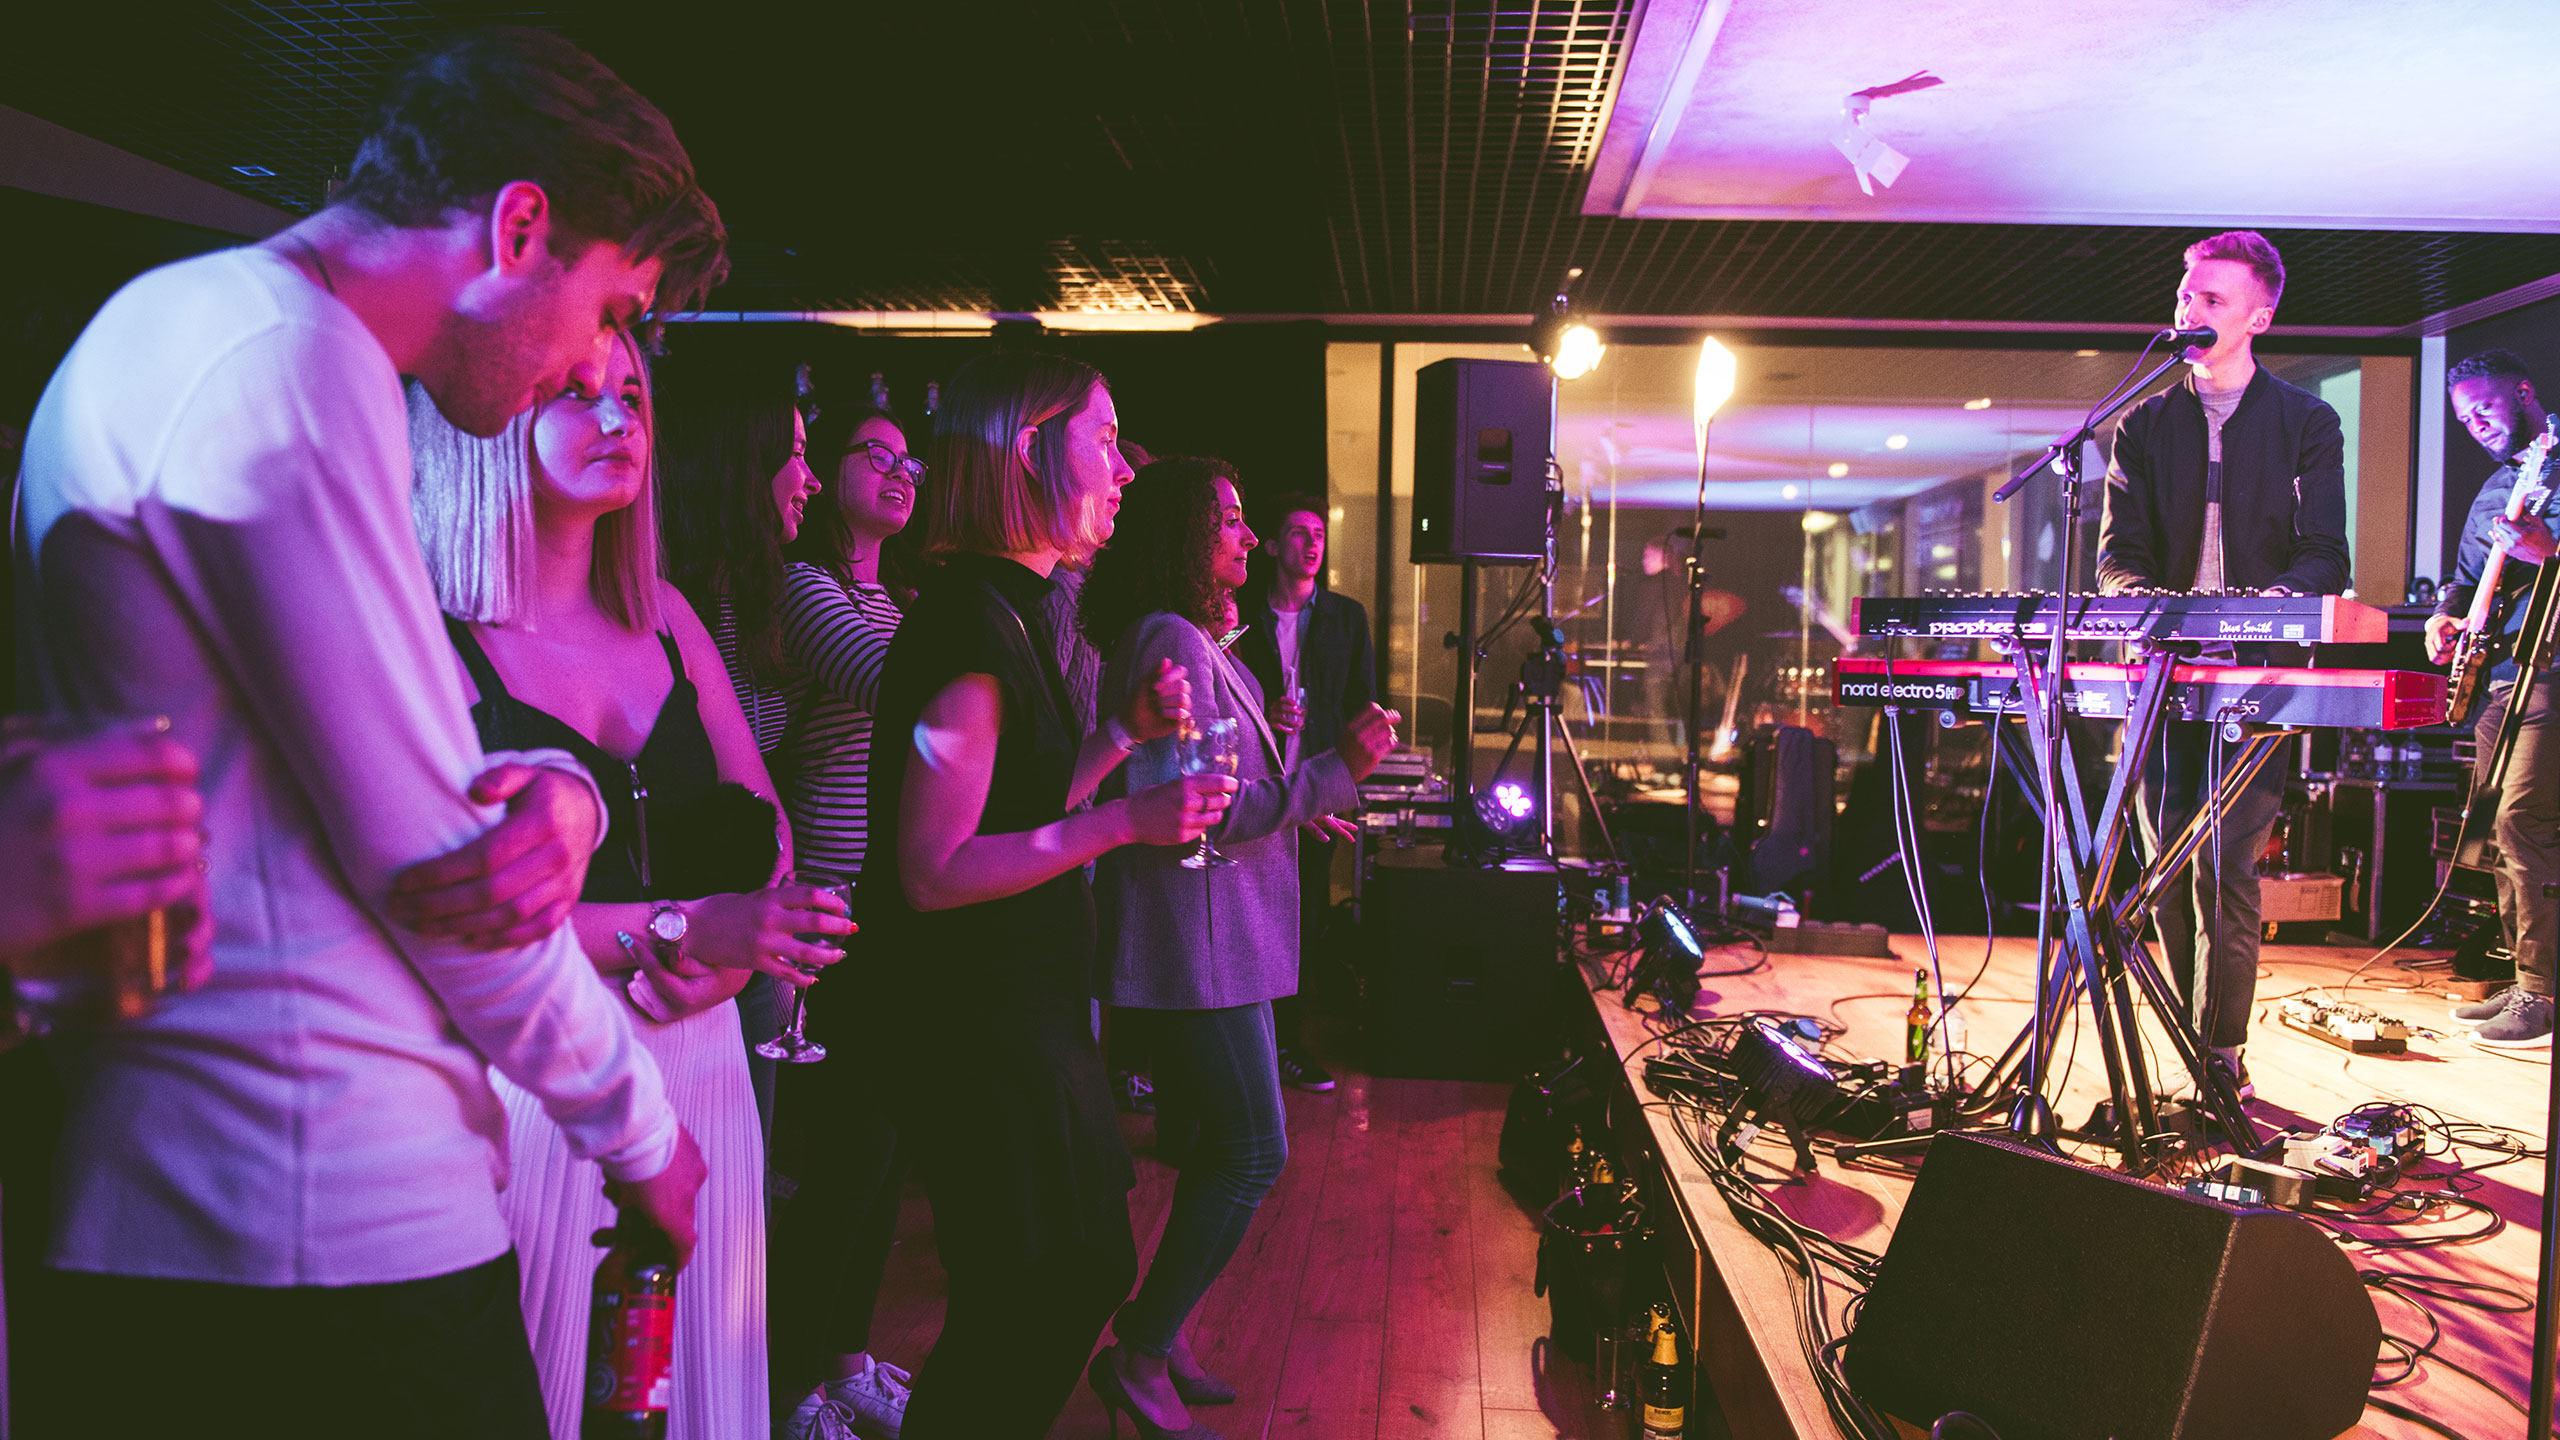 The audience watches Honne playing keyboards on stage at PRS Presents